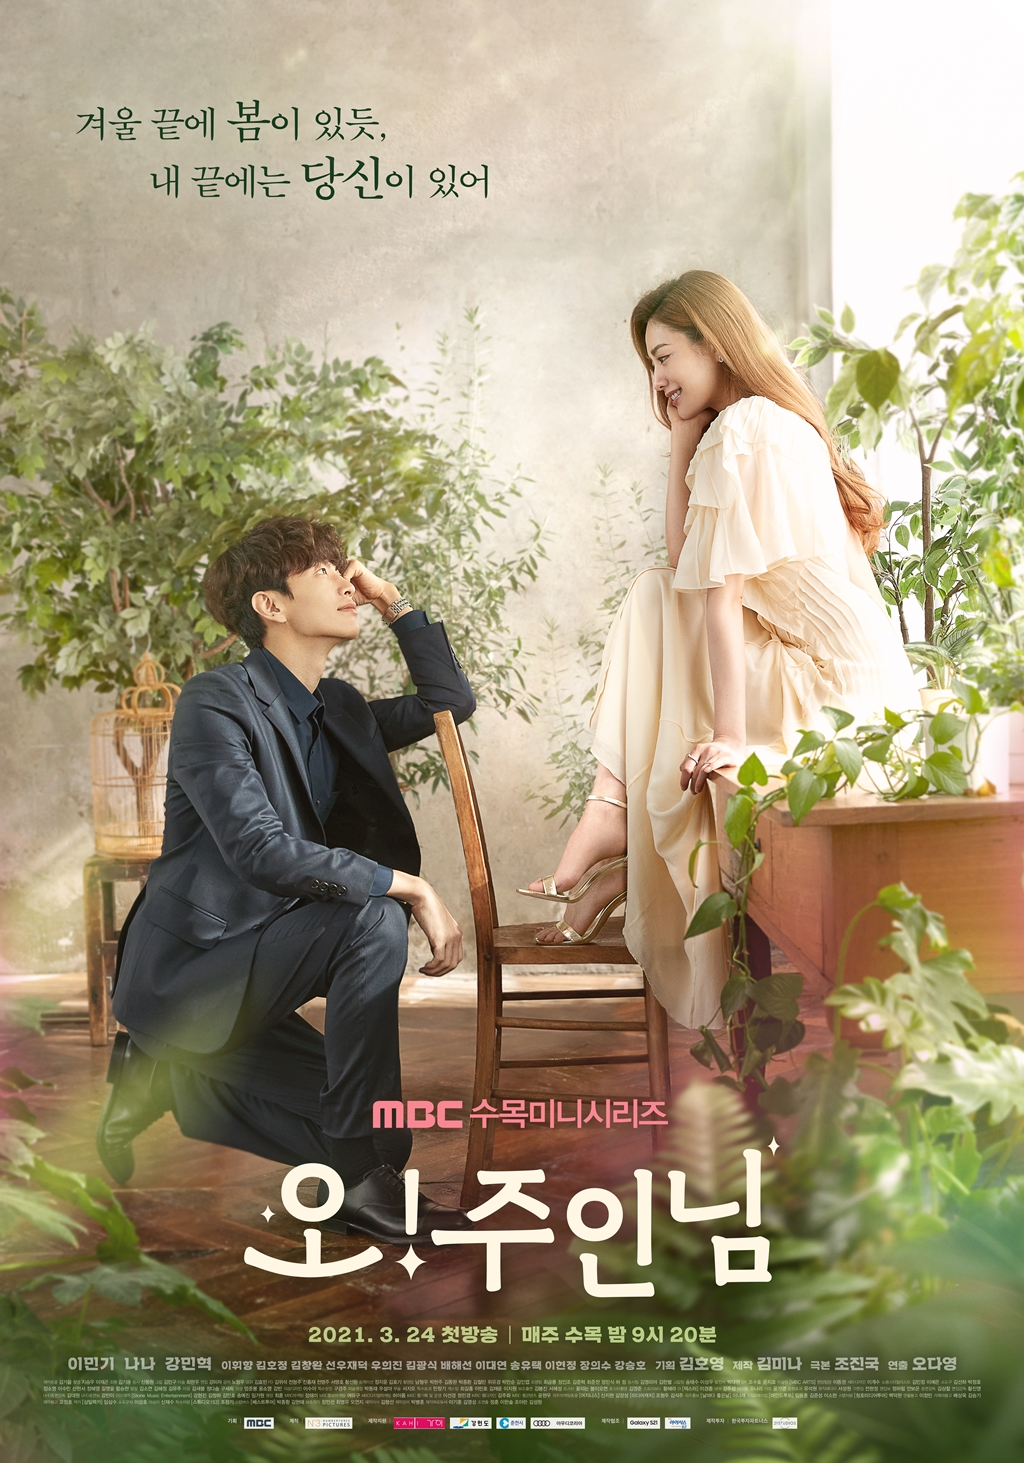 A romantic comedy about a thriller dramas screenwriter and an actress that specializes in romantic comedy. While the writer chooses not to date, the actress cannot seem to date.